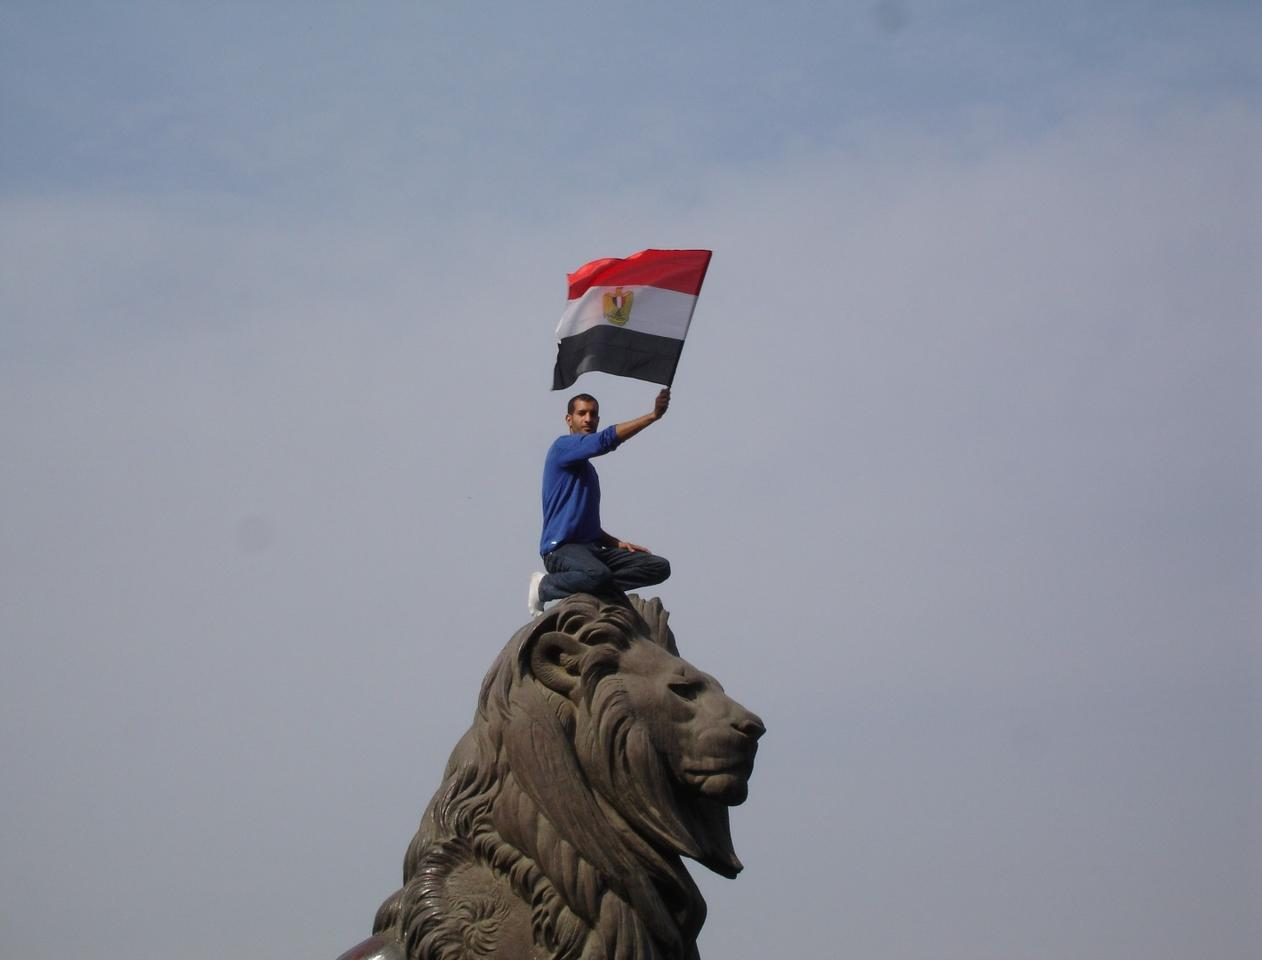 An Egyptian protester during the 2011 revolution. (Credit: Kodak Agfa CC BY-SA 2.0)